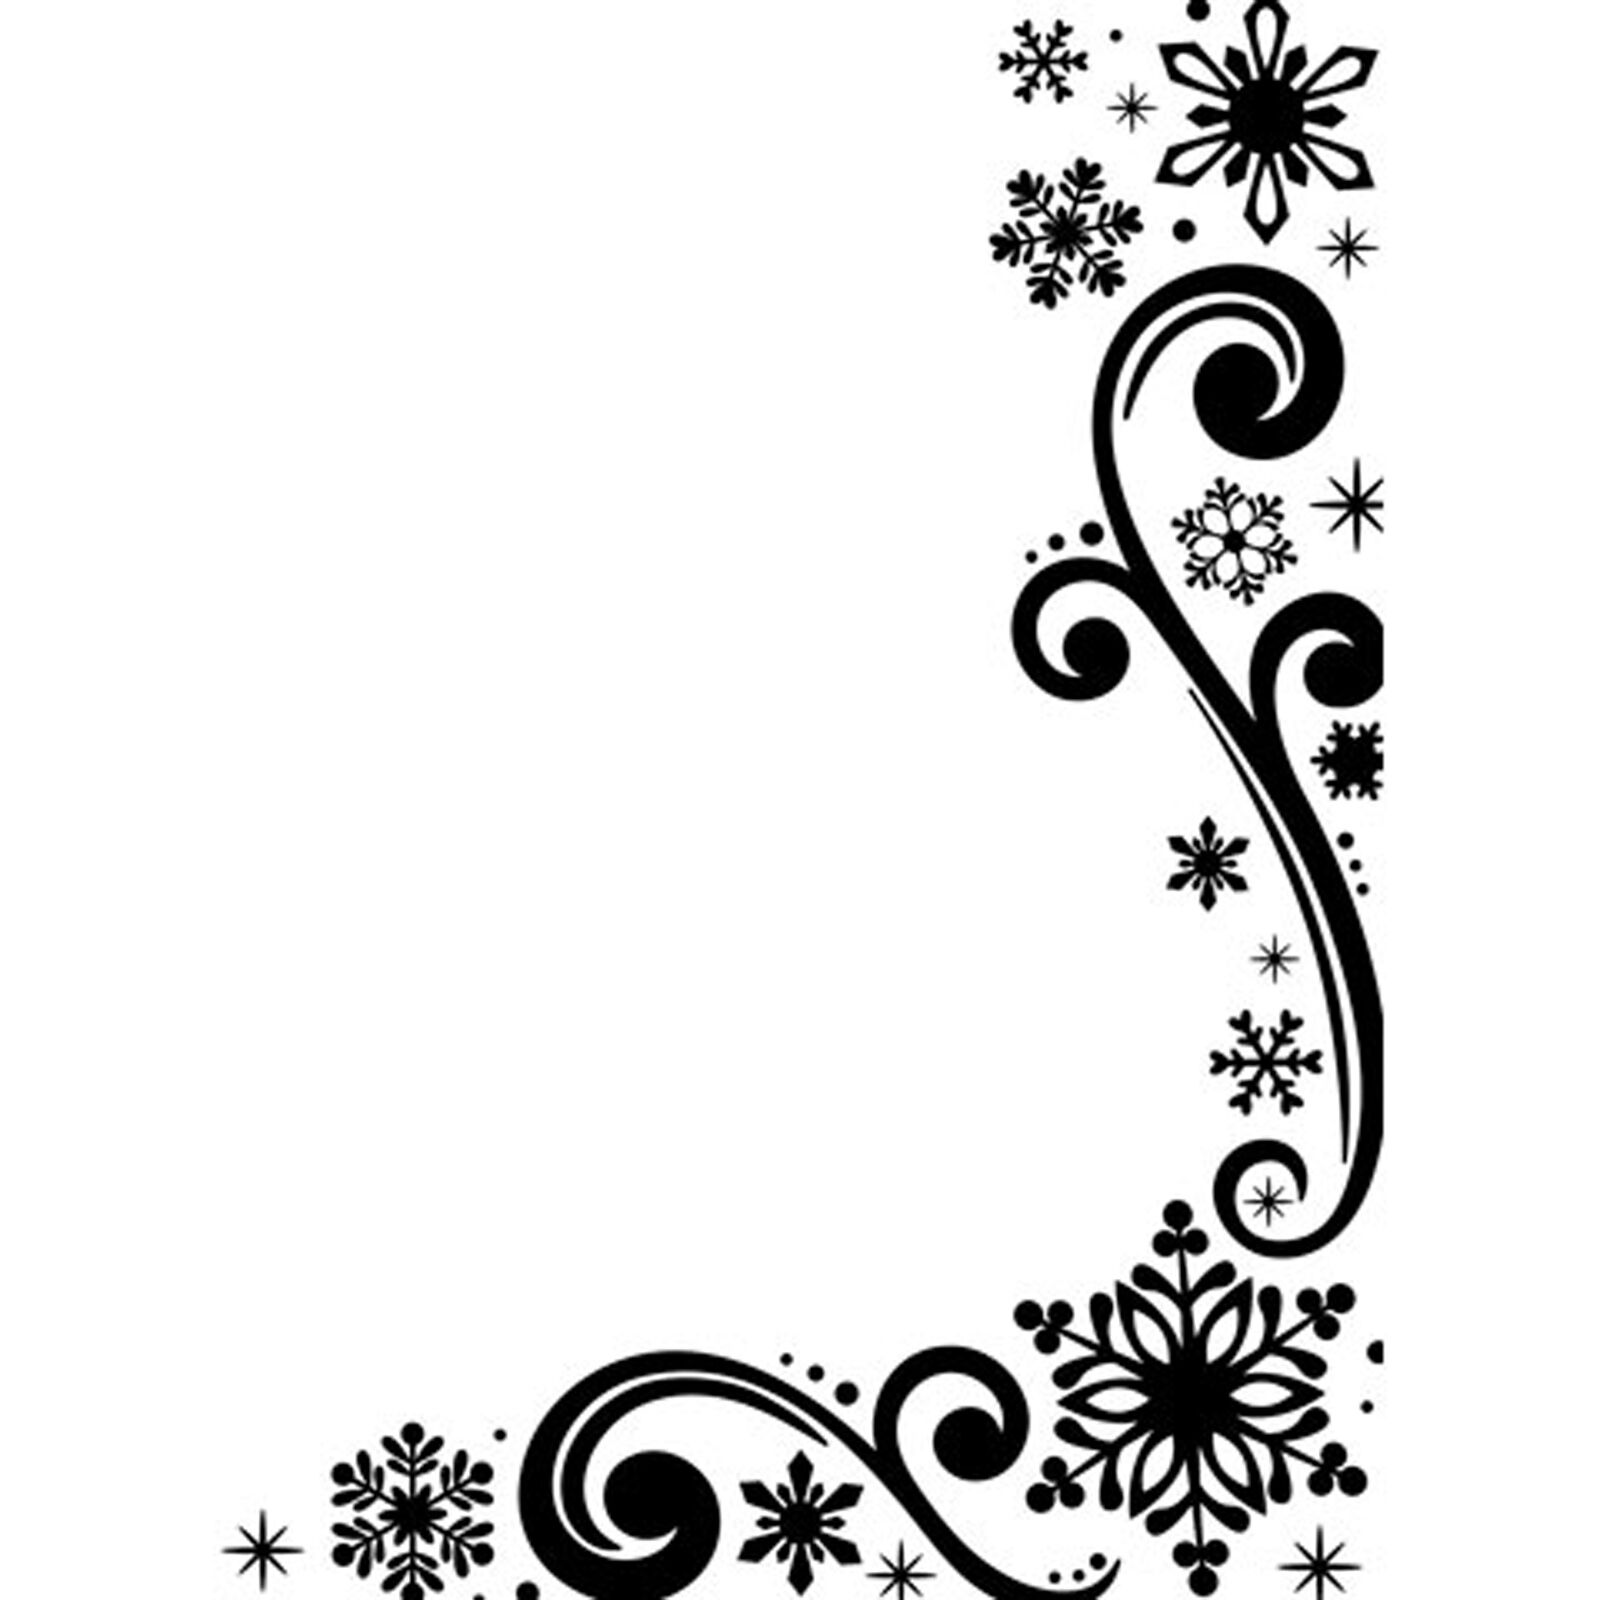 4.25 By 5.75-inch Daric 1218-117 Embossing Folder Snowflake Scroll Design